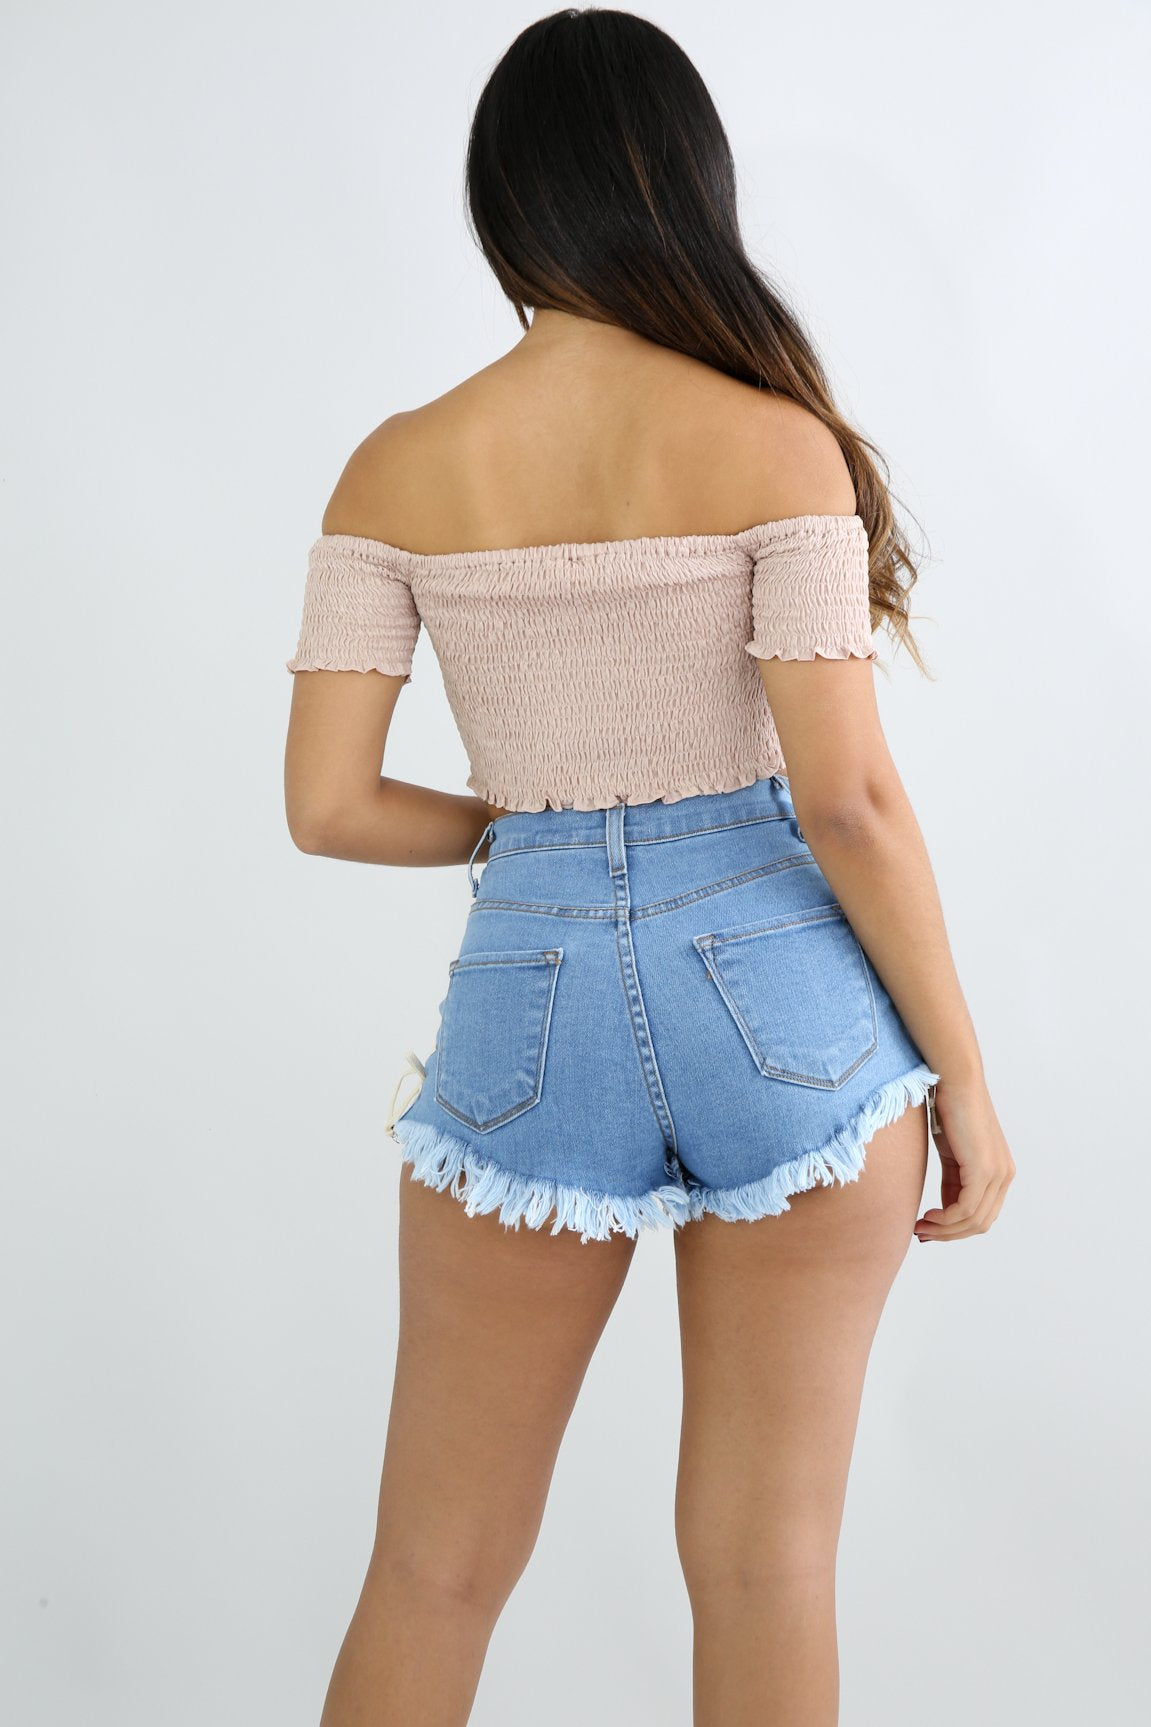 Smocked Clip On Crop top